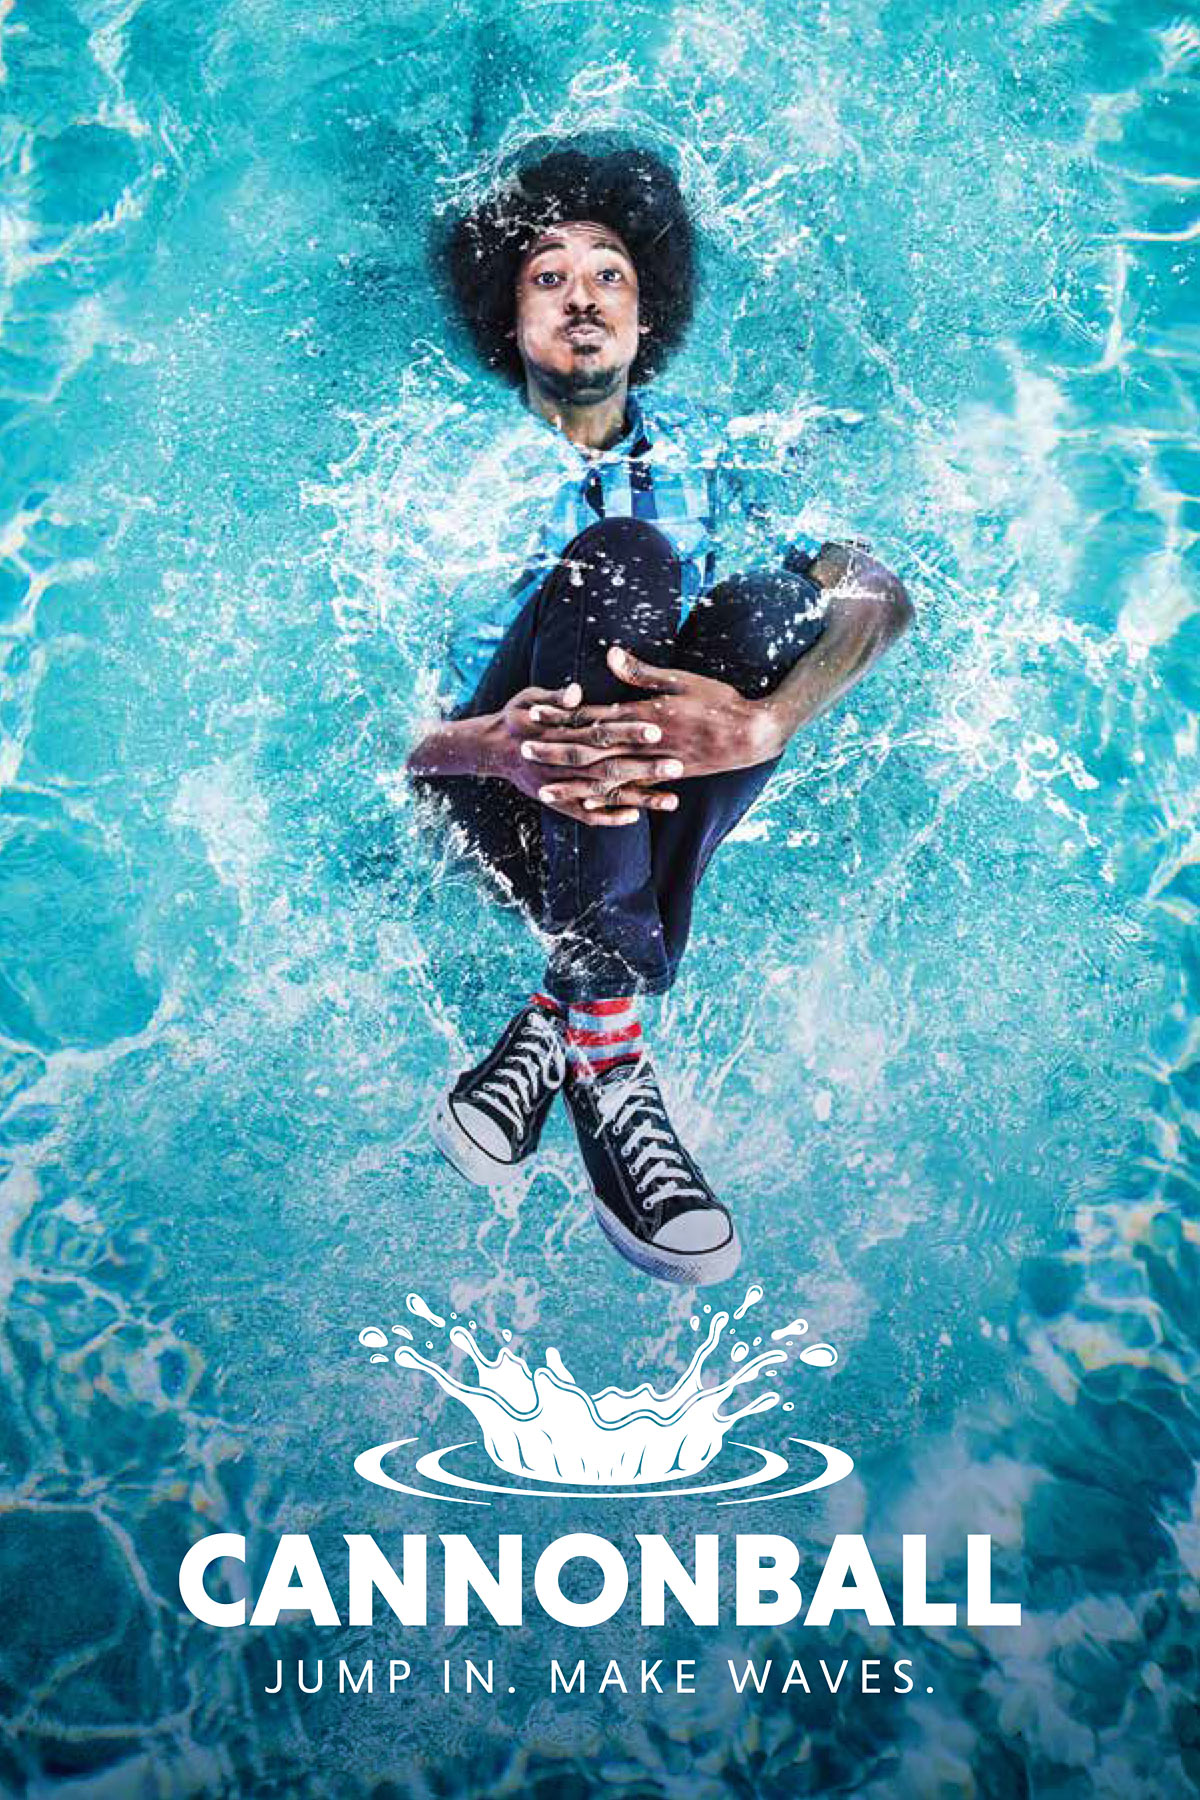 jackson_co_eastlake_church_cannonball_campaign_underwater_photography_milwaukee_chicago_midwest_commercial_advertising_production_retouching_01